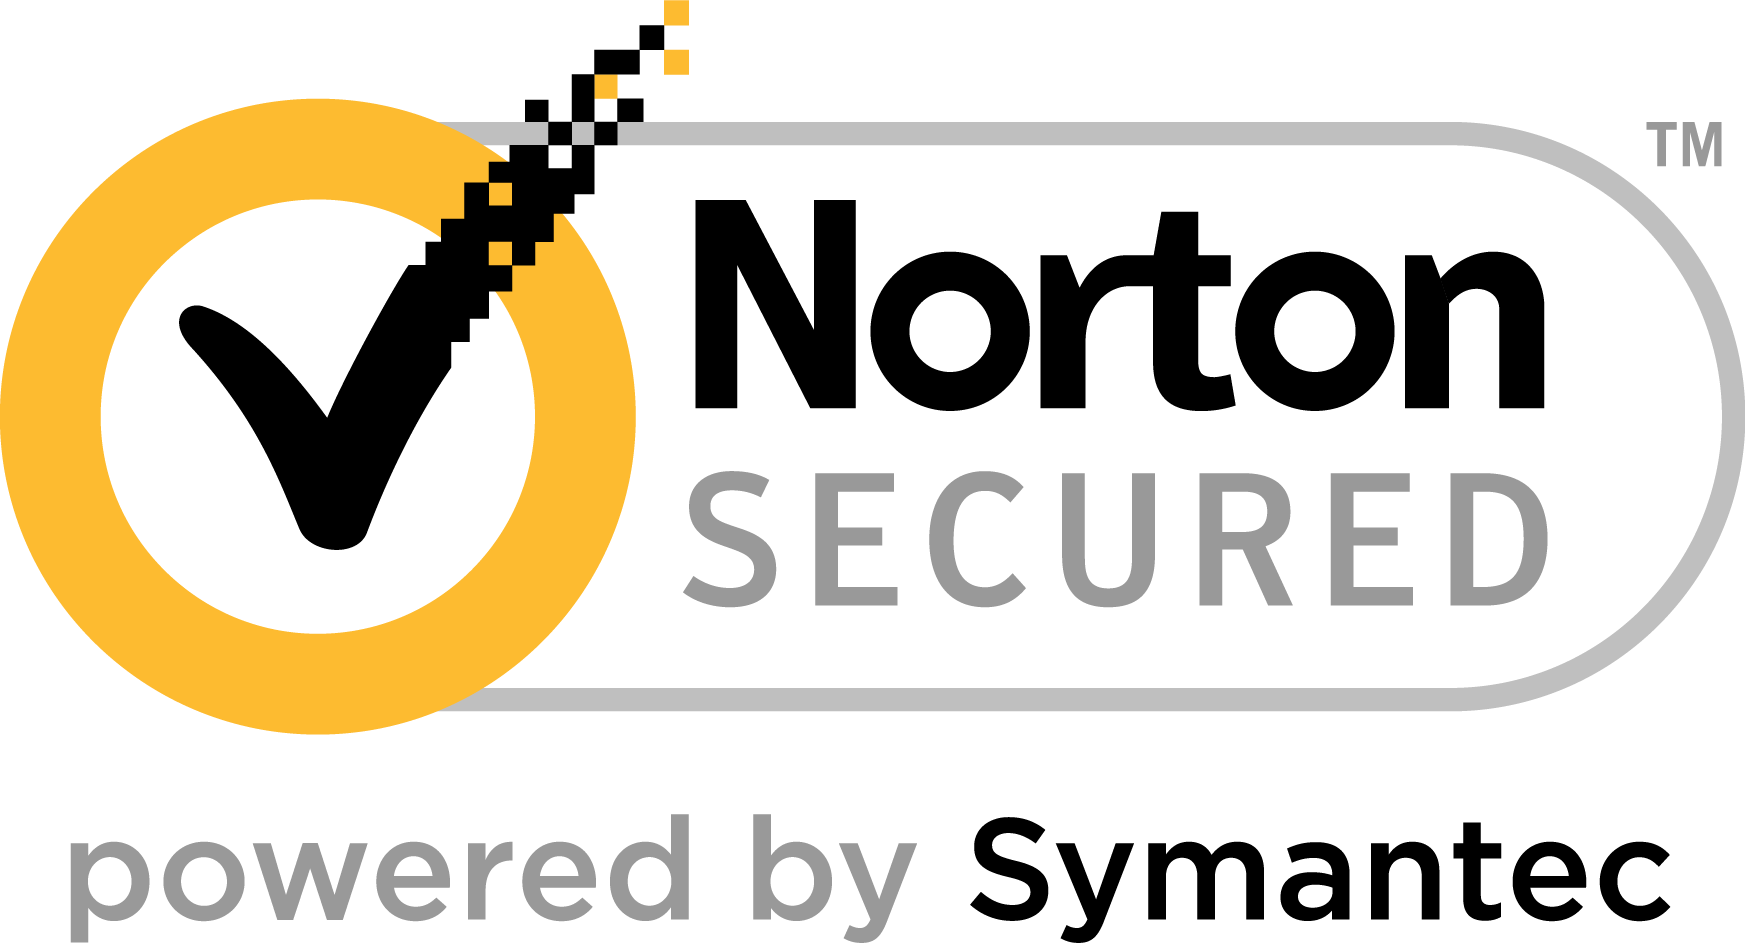 Notron Secured